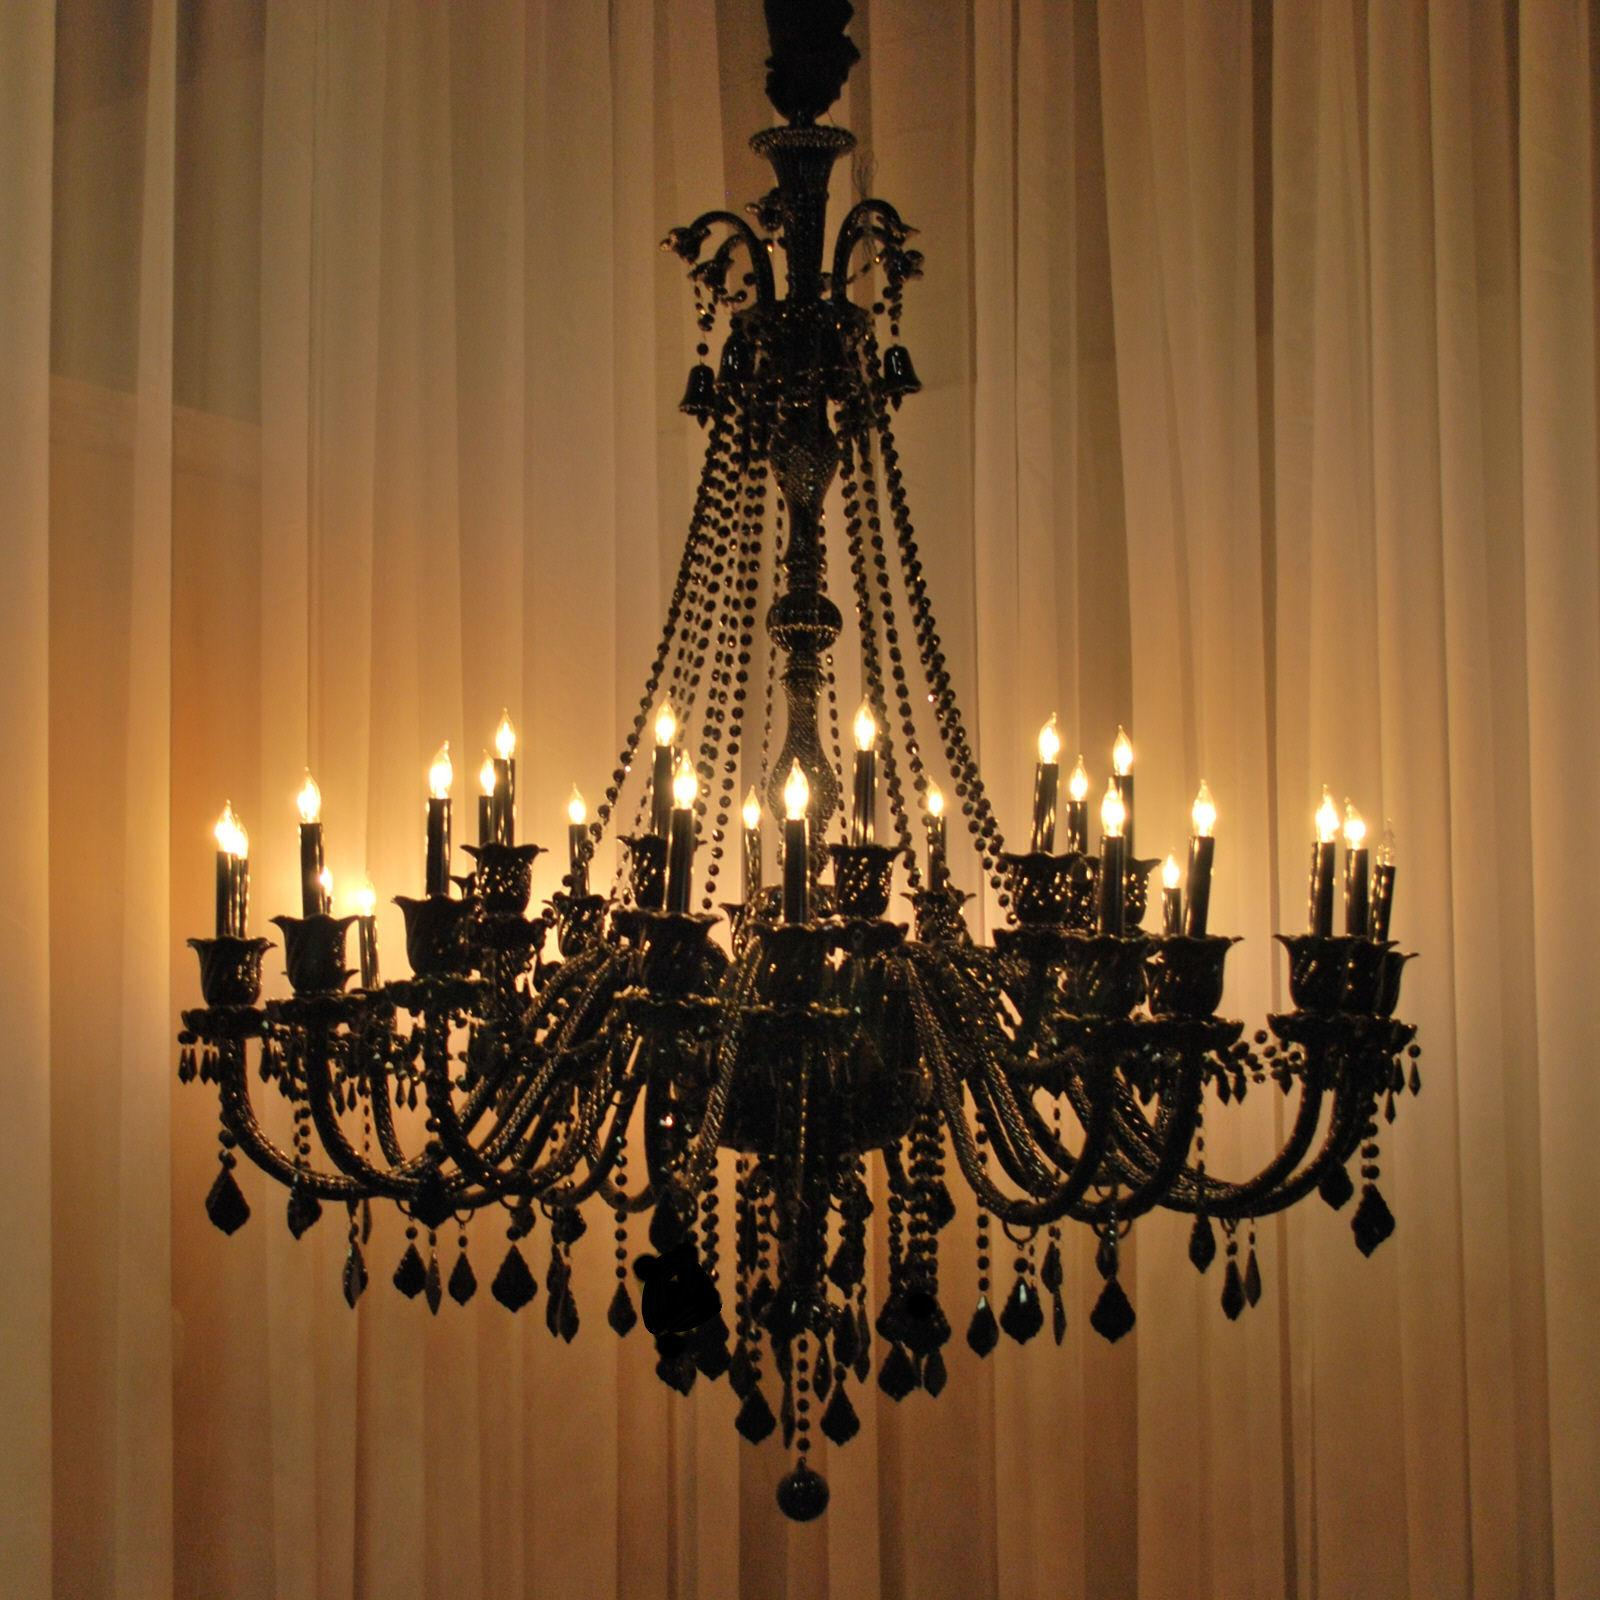 Astounding Gothic Chandelier | Impressive Spanish Wrought Iron Chandelier